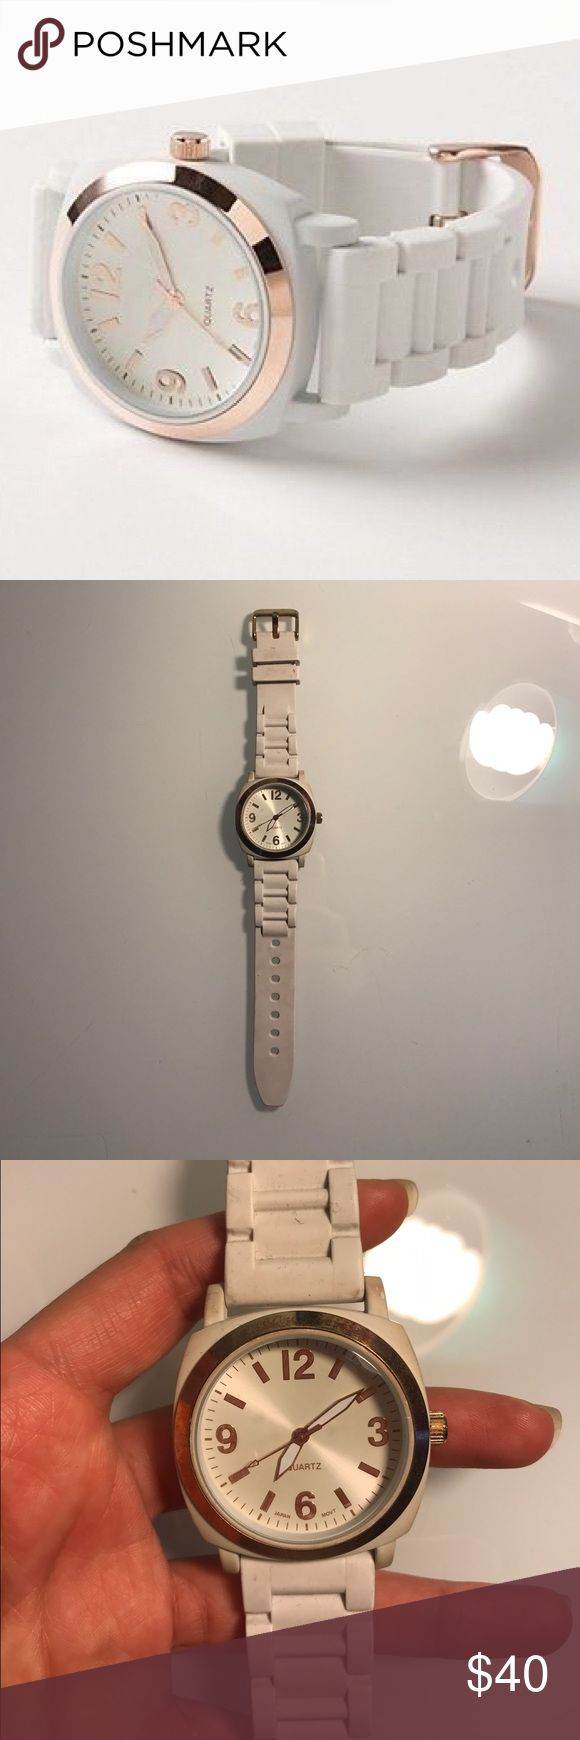 """Anthropologie Viscid Rubber Watch Good condition. """"A bright gummy strap is lent sophistication from serious gold hardware."""" 9""""L, 1.5 W Anthropologie Accessories Watches"""